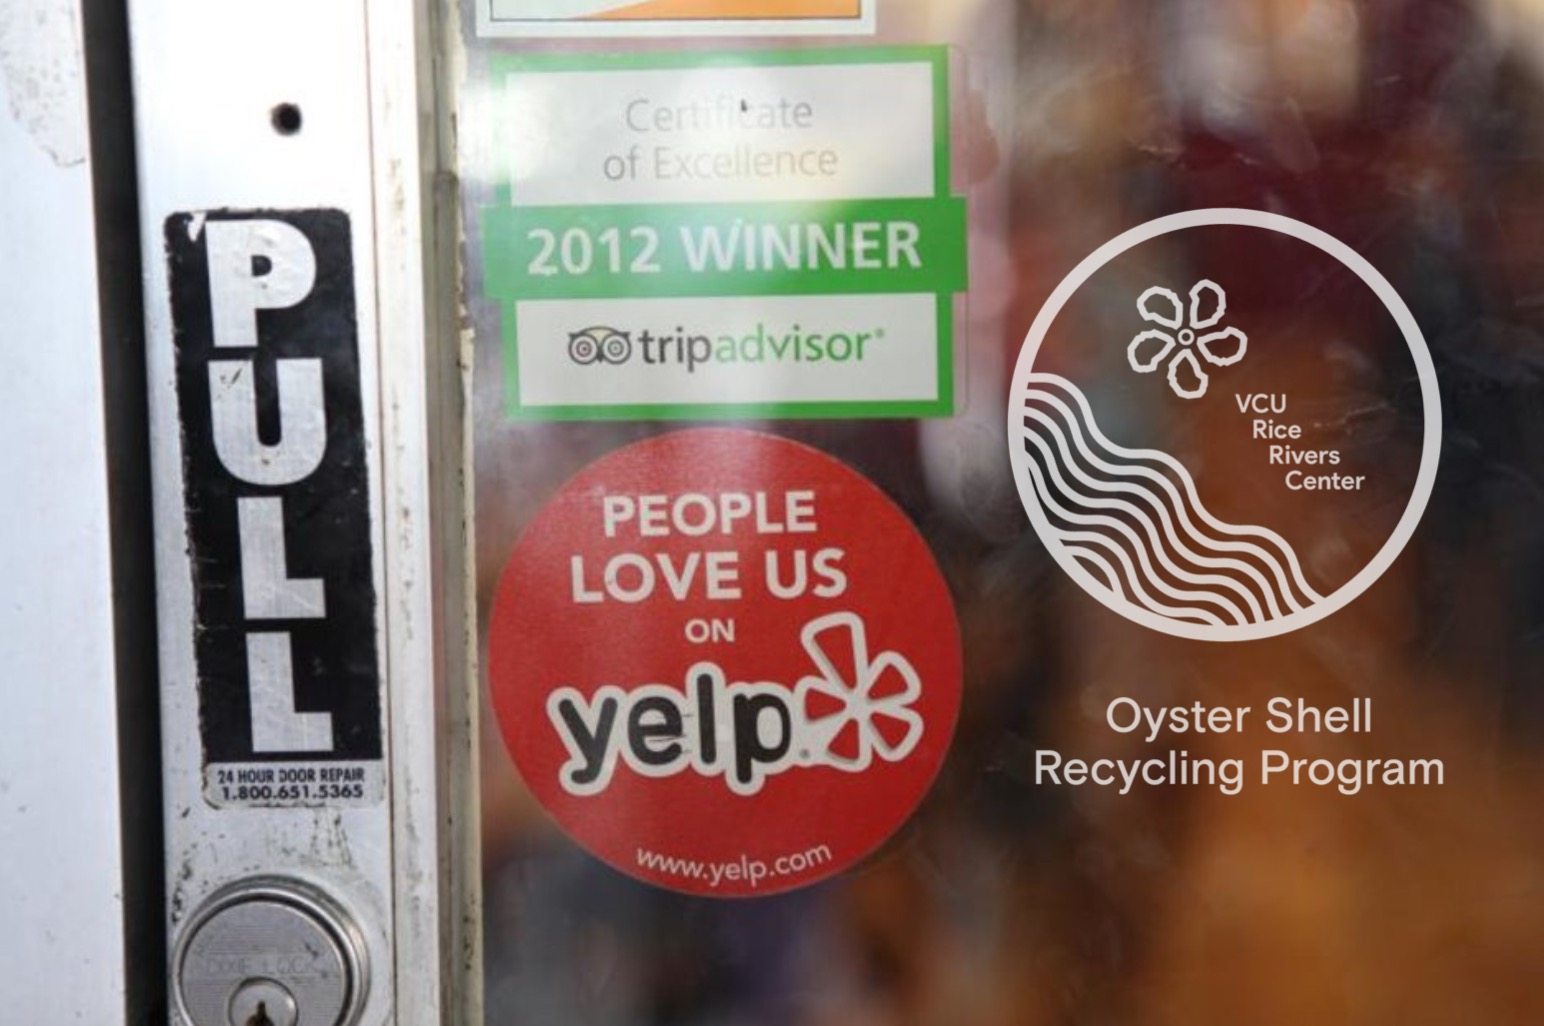 Window decals will put the RRC name right on the door of participating Oyster Shell Recycling Program restaurants.